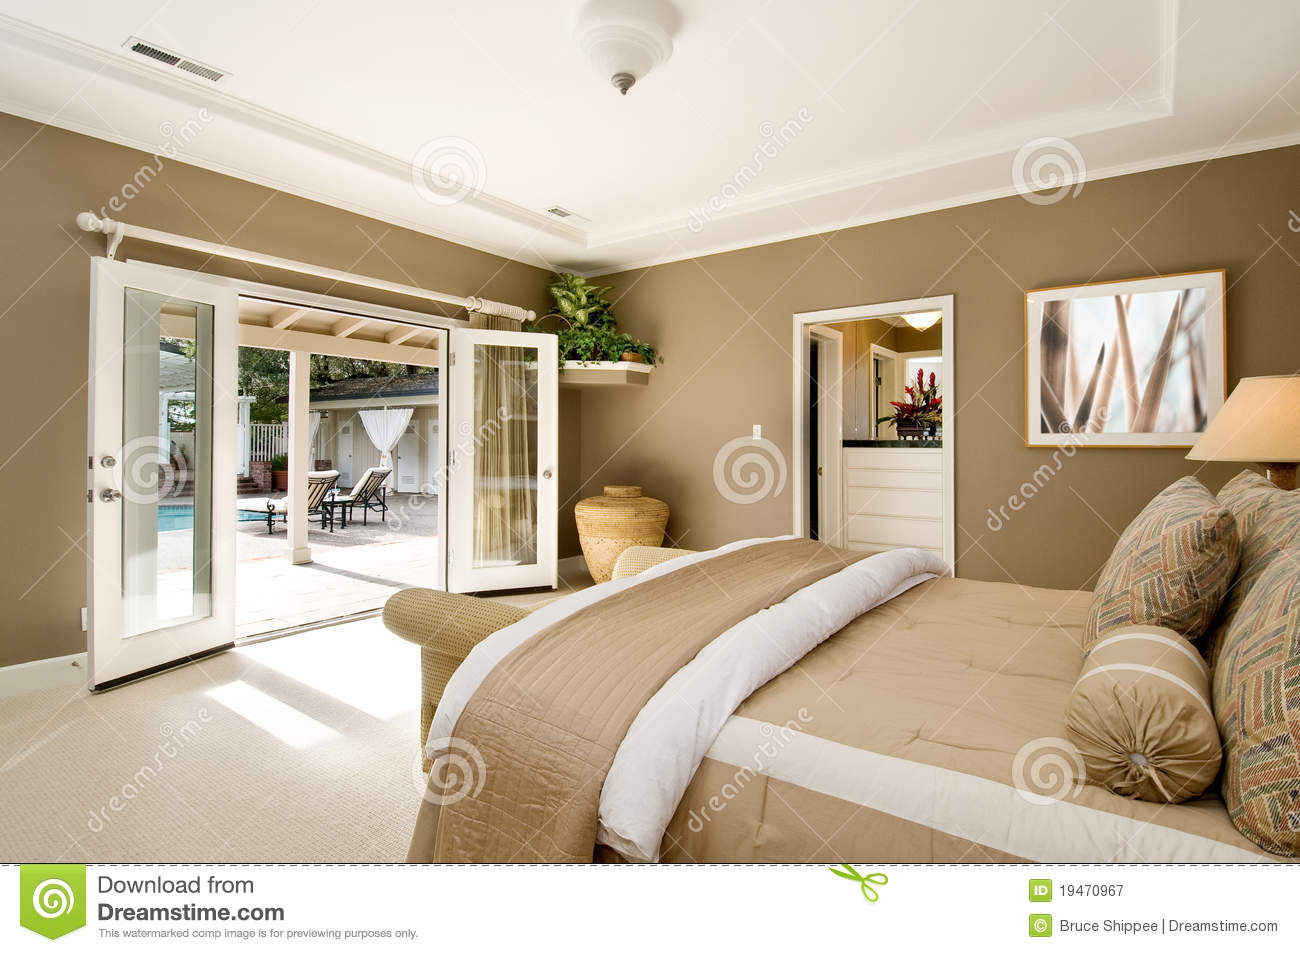 Grote Slaapkamer Stock Photos - Royalty Free Images